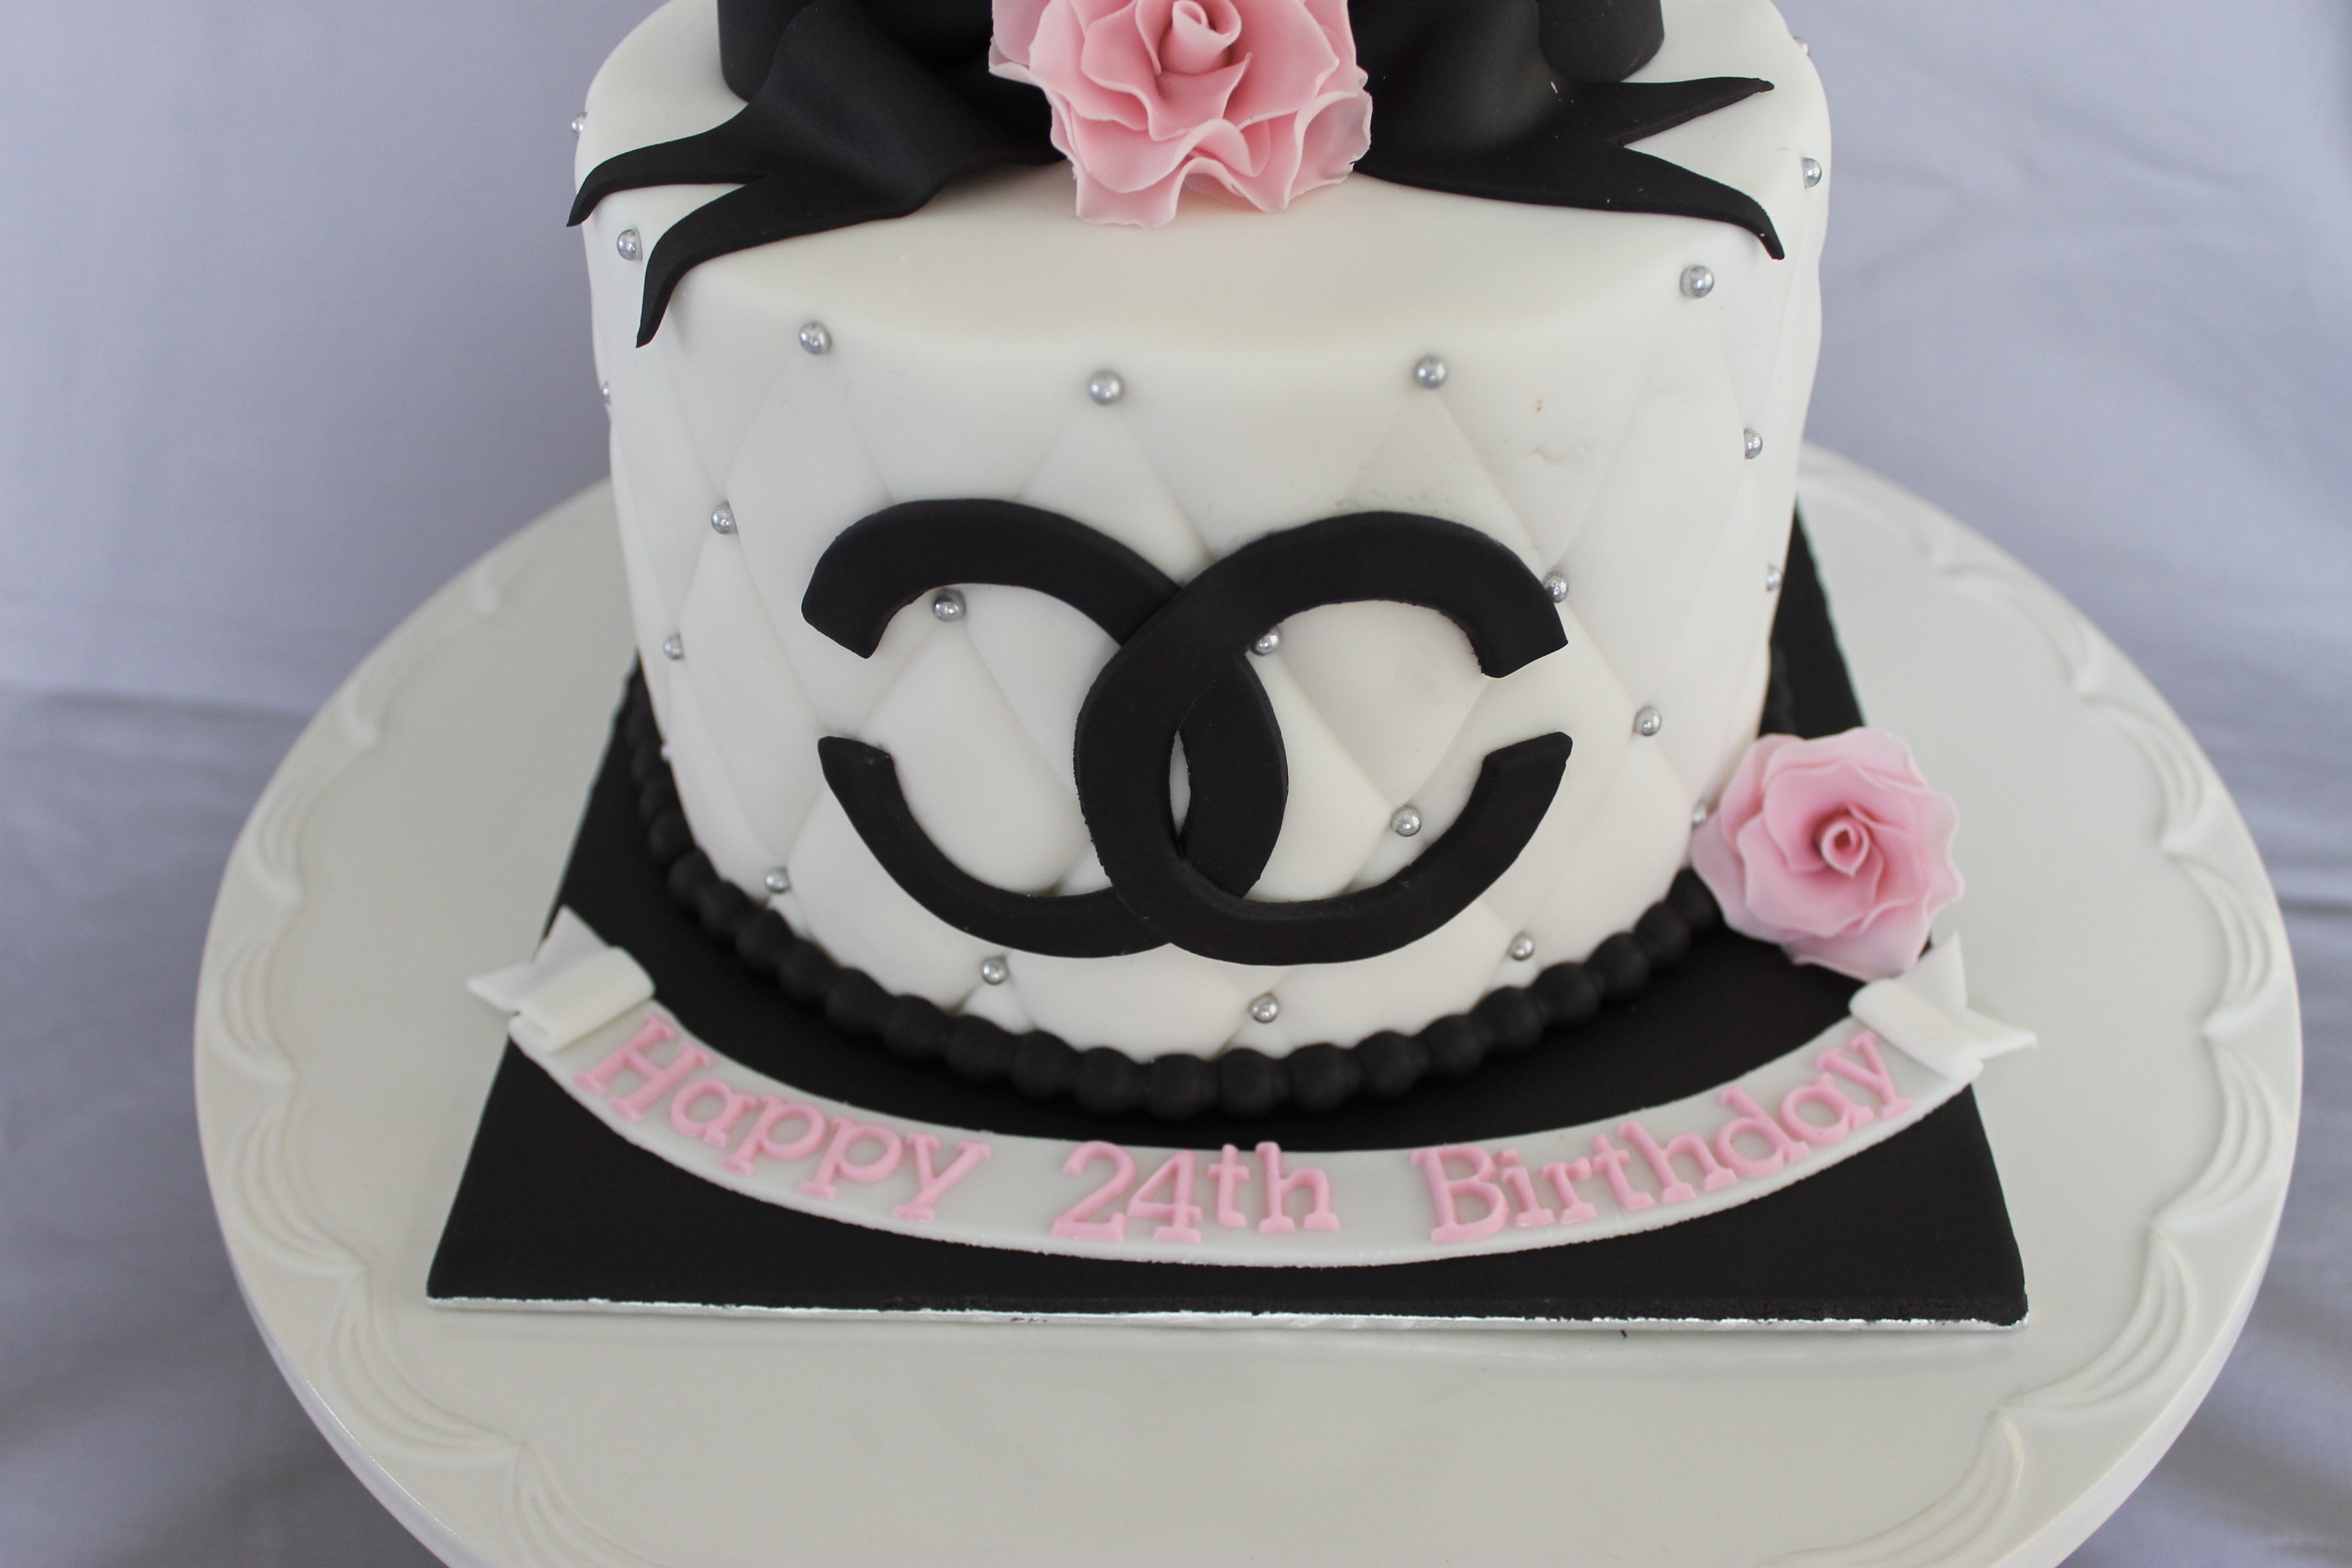 Chanel Birthday Cake - CakeCentral.com